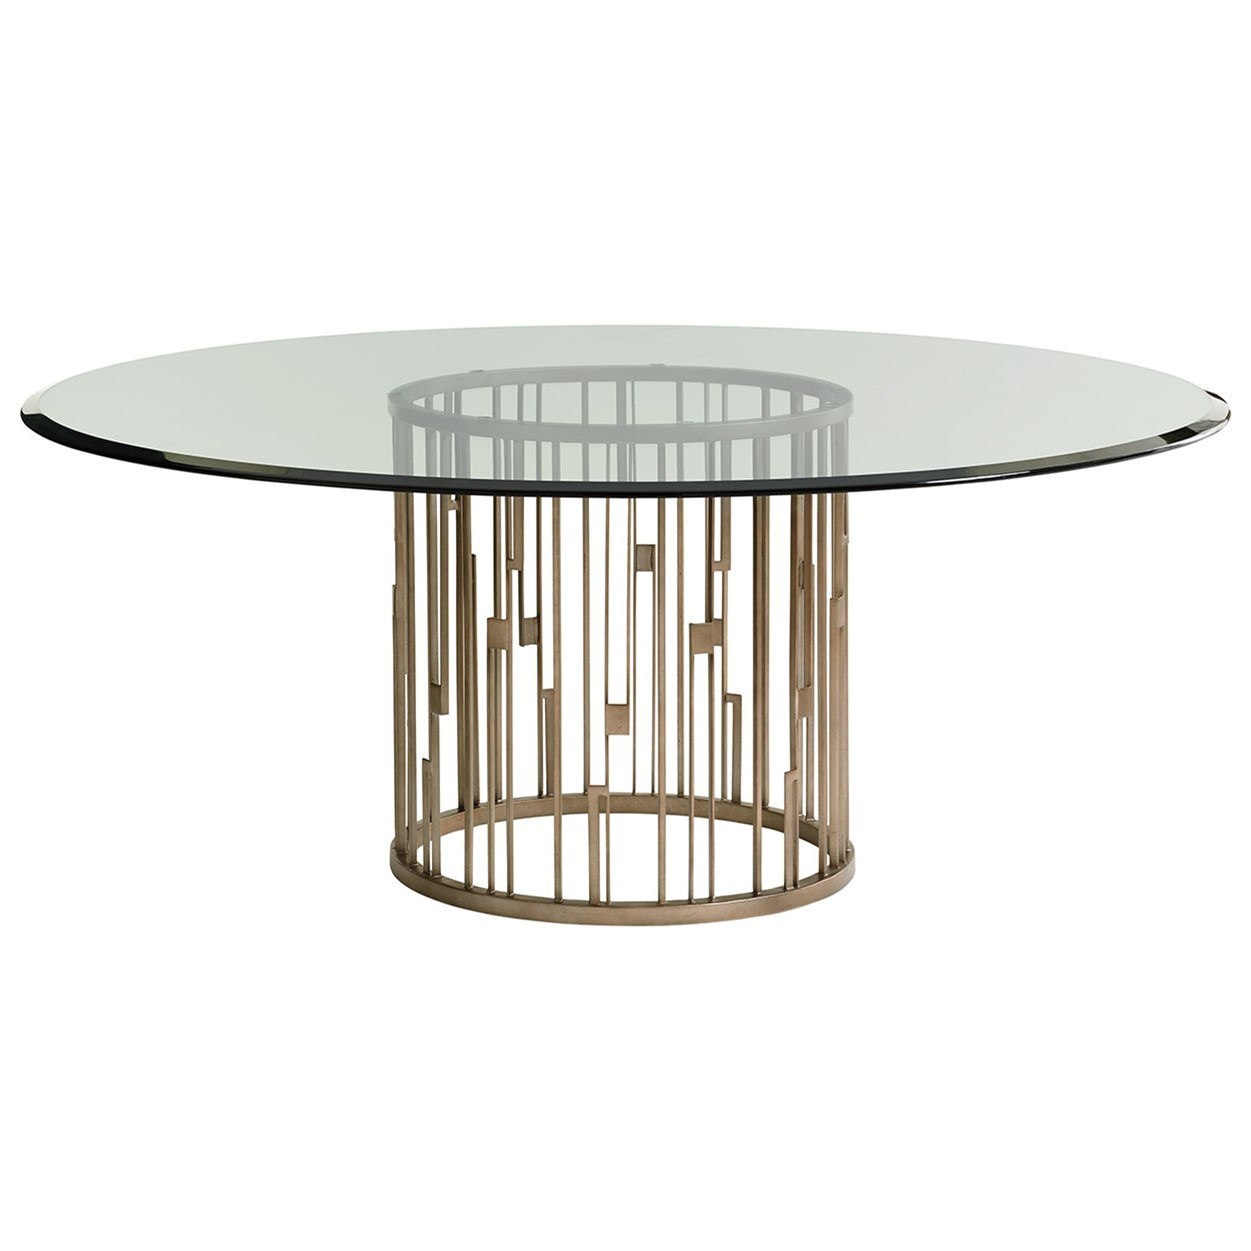 Shadow Play Rendezvous Dining Table with Glass Top by Lexington at C. S. Wo & Sons California